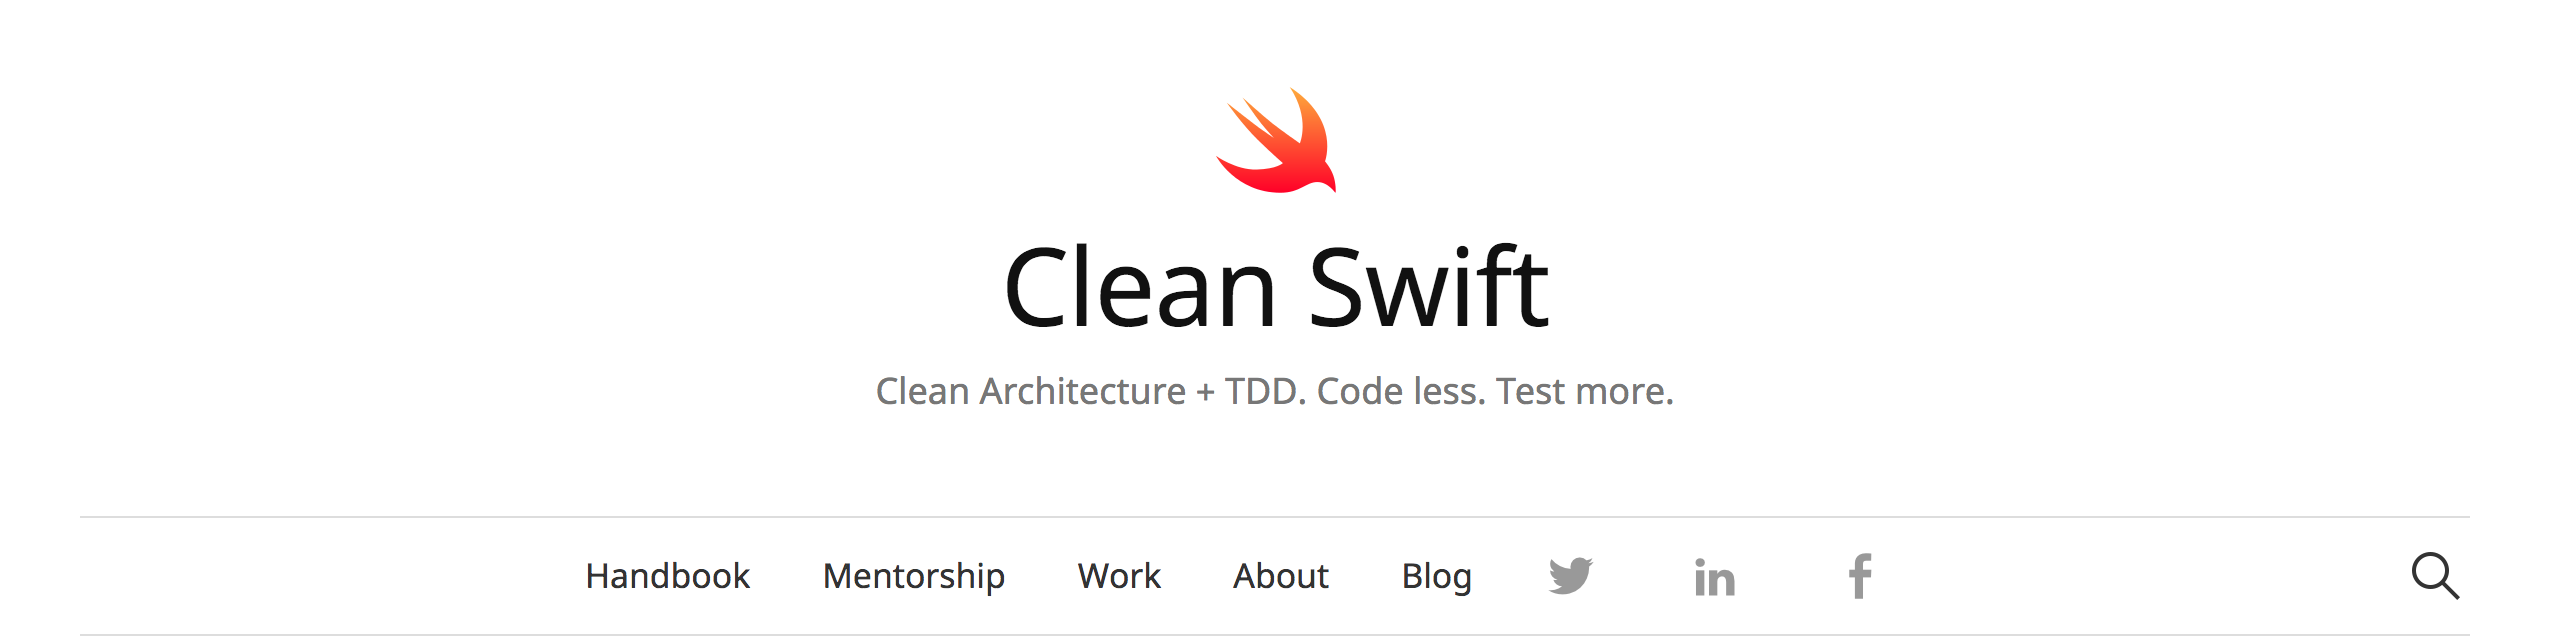 Introducing Clean Swift Architecture (VIP) - By